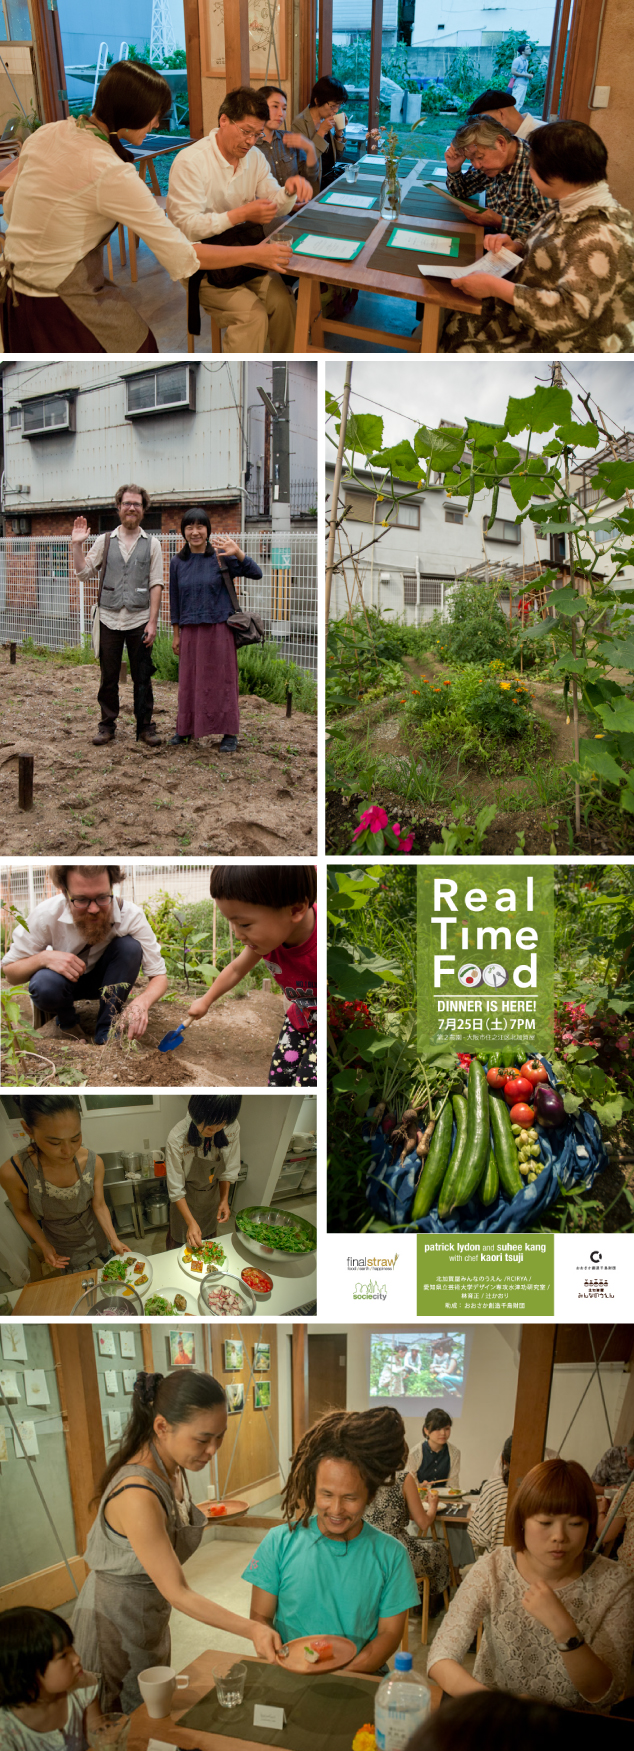 Images from the REALtimeFOOD opening, garden building, and dinner event during the project in Osaka, Japan